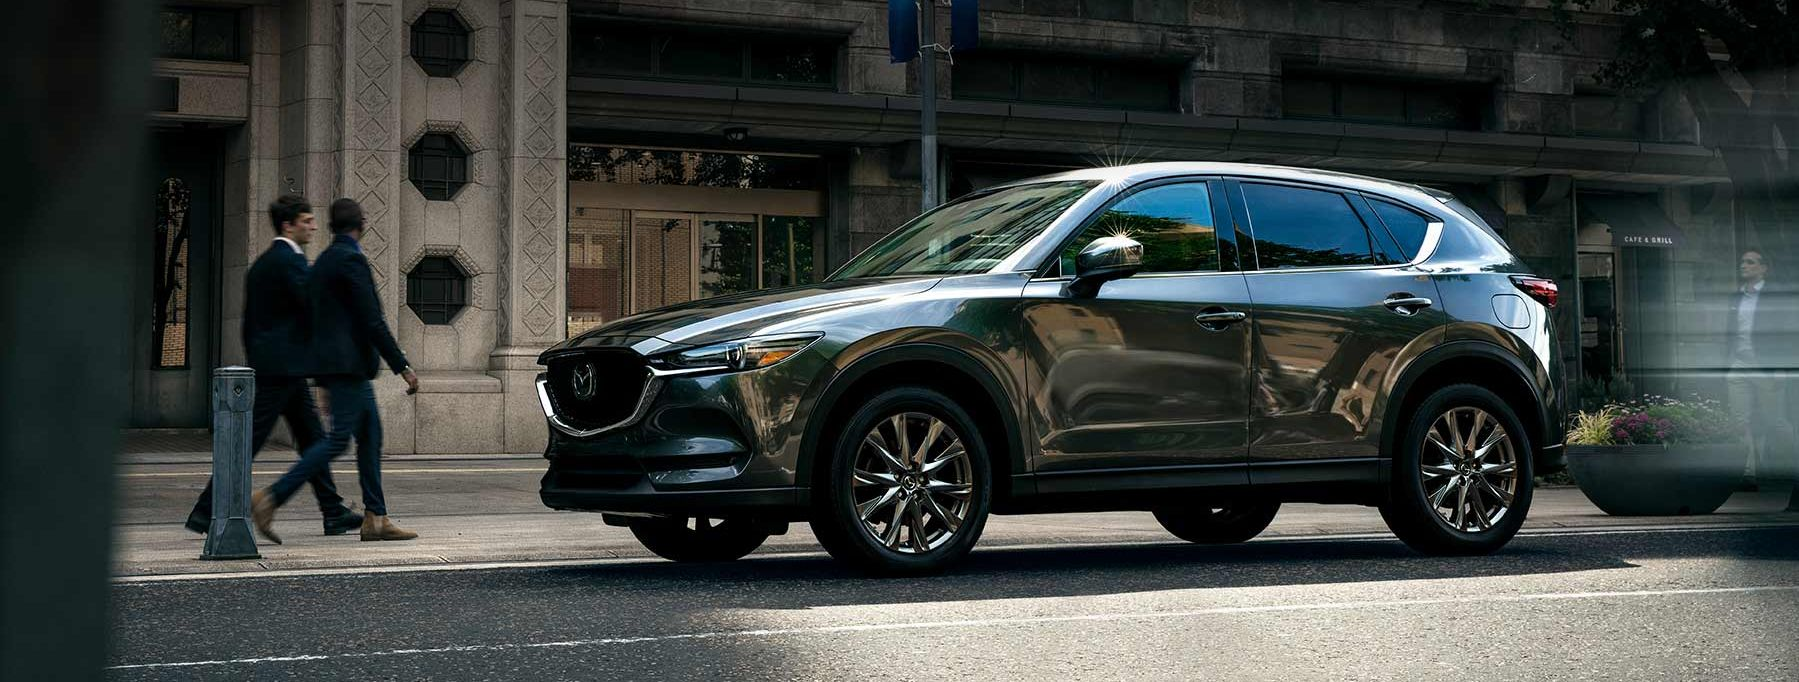 2019 Mazda CX-5 for Sale near Fullerton, CA